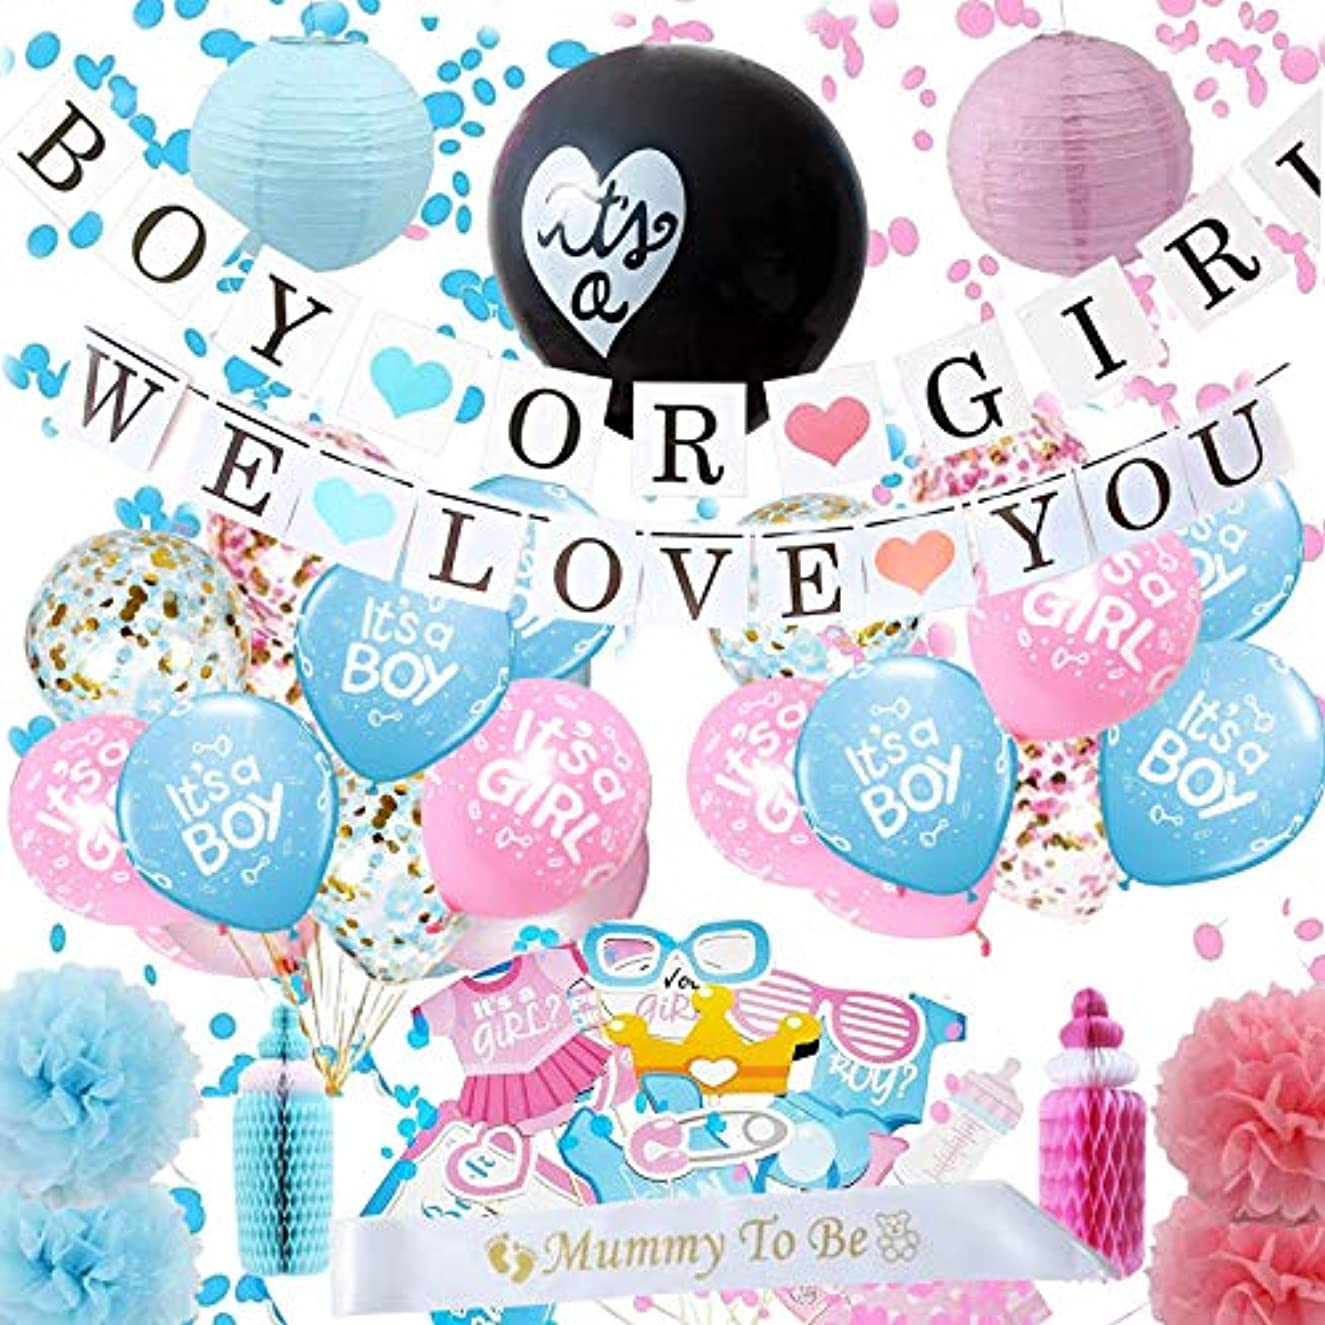 Baby Gender Reveal Party Supplies, Boy or Girl Party Decorations Kit With Black Balloon And Pink Or Blue Confetti, Photo Props, Pom Poms, Paper Lanterns, Pink and Blue Balloons, Transparent balloons with blue and pink confett